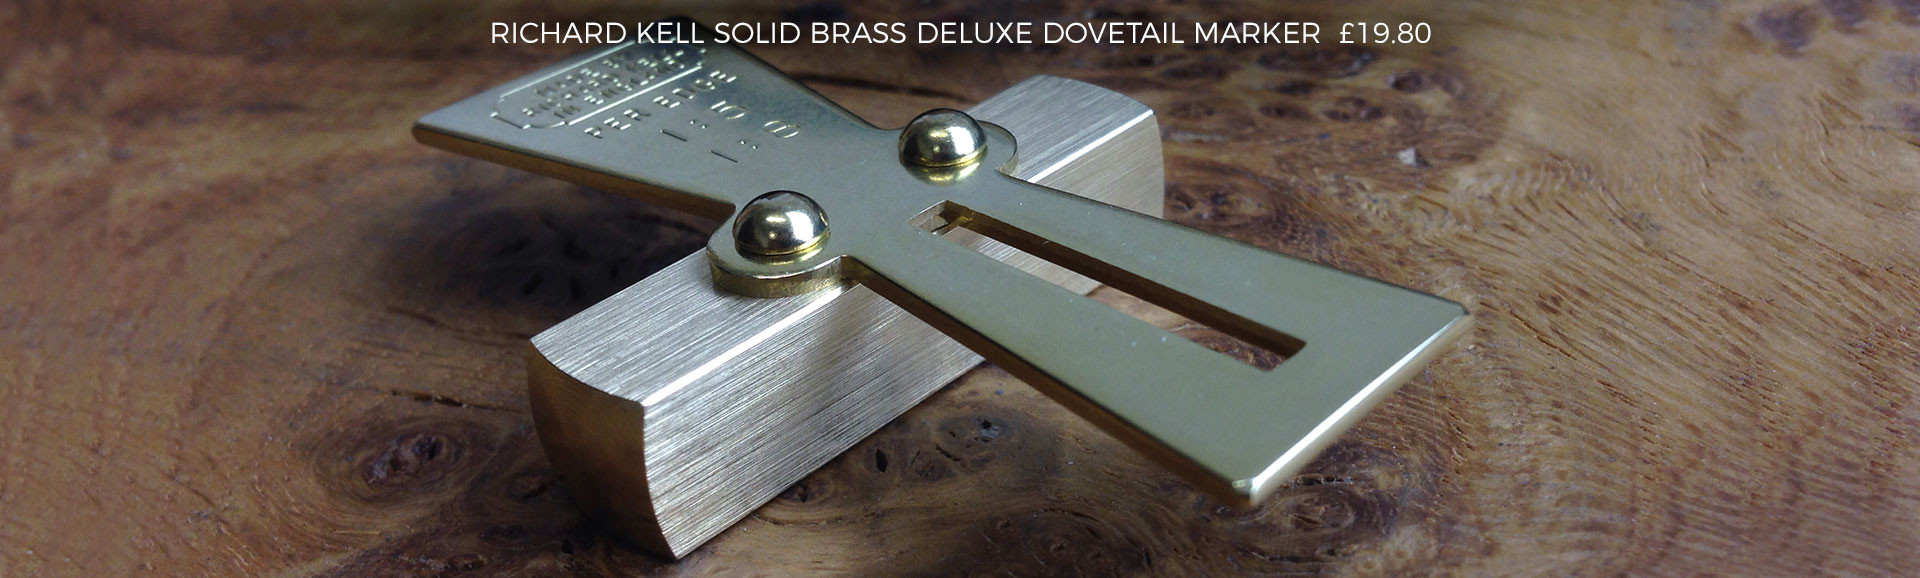 Richard Kell Solid Brass Deluxe Dovetail Marker